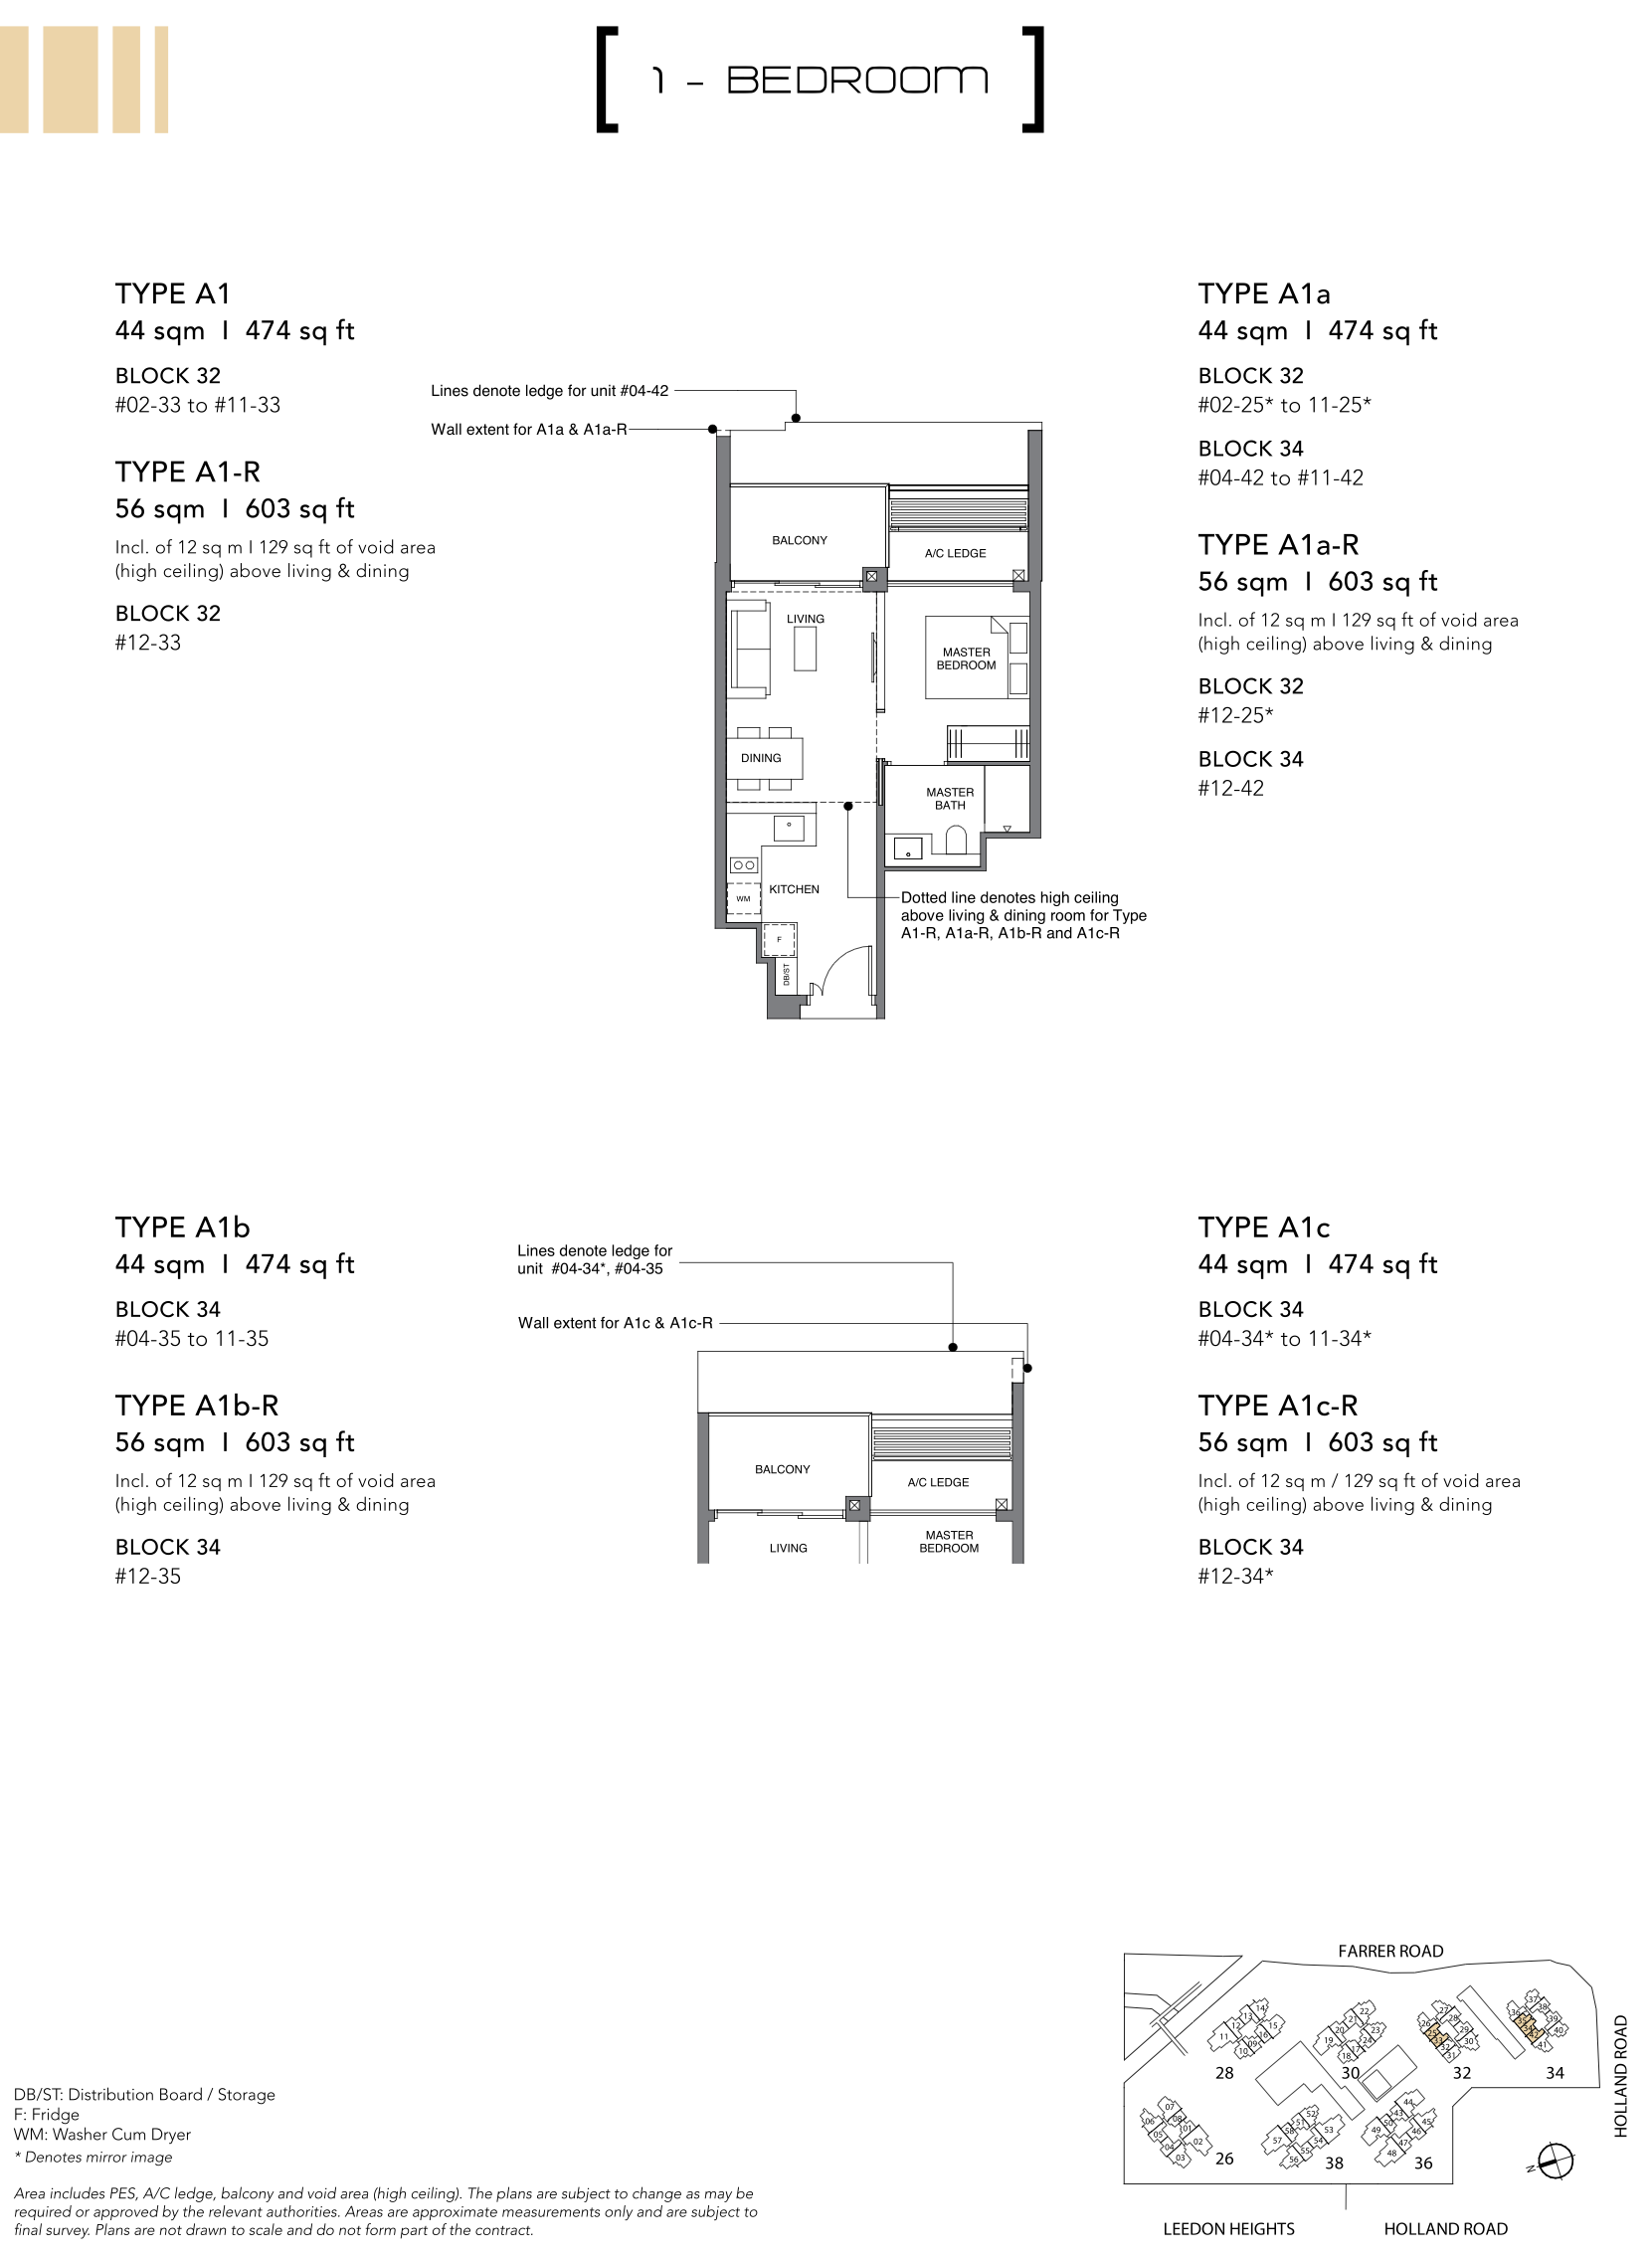 绿墩雅苑公寓户型图 Leedon Green floor plan 1 bedroom